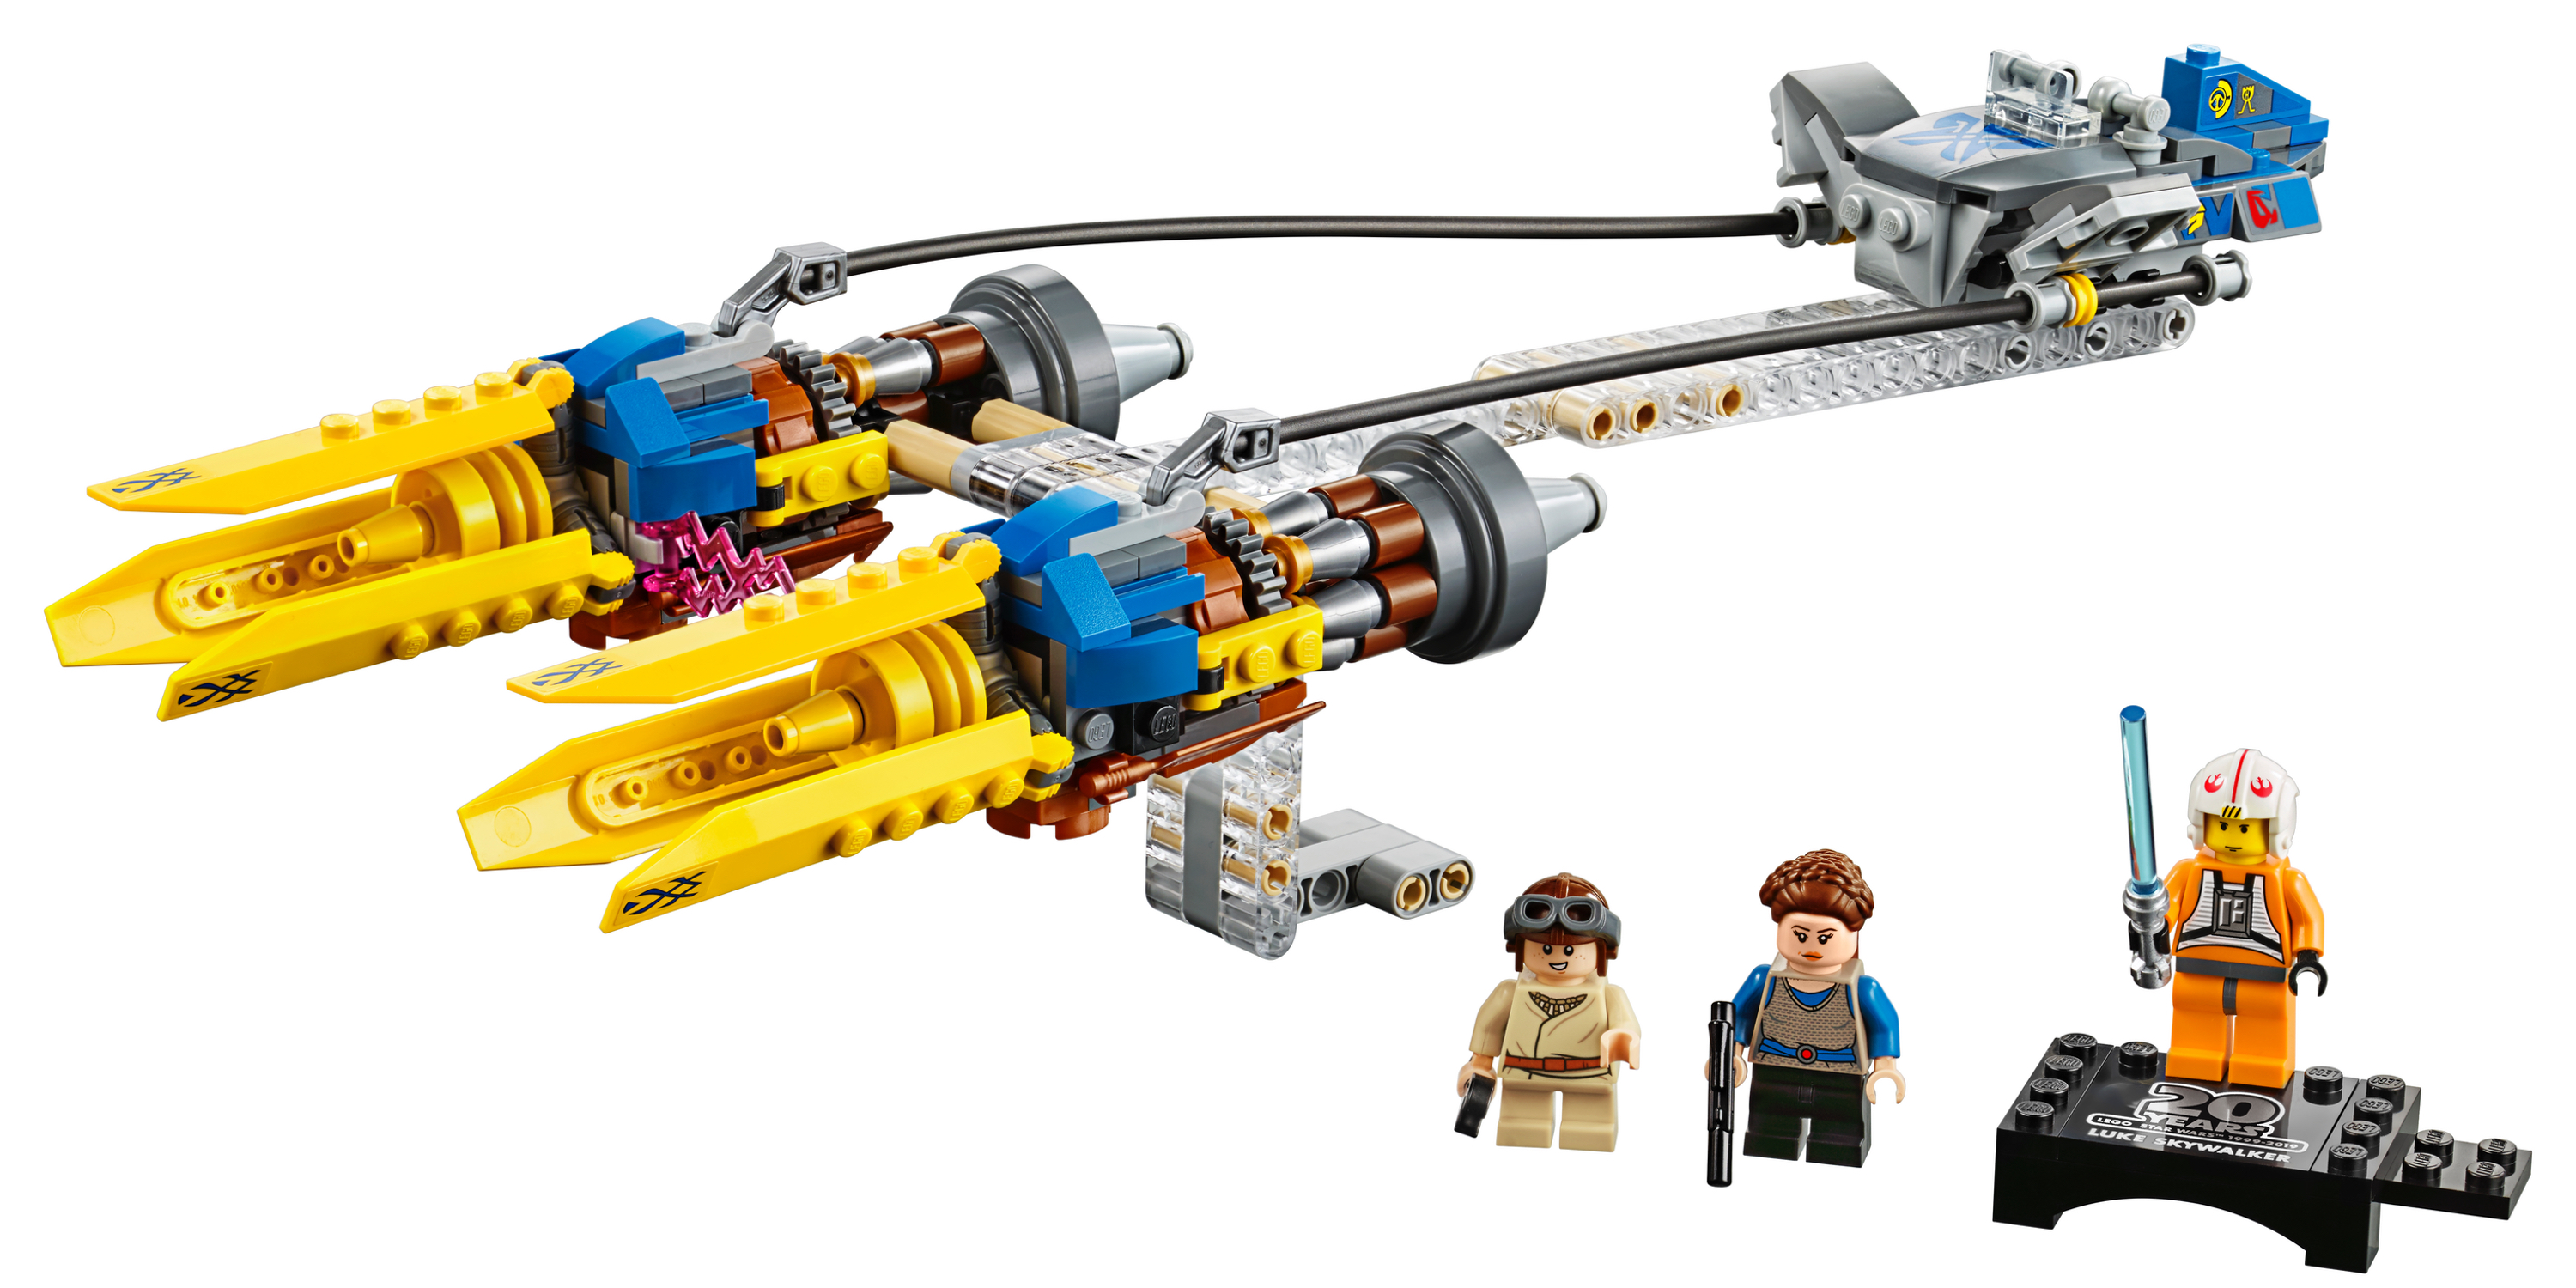 LEGO Star Wars 20th Anniversary Anakin's Podracer